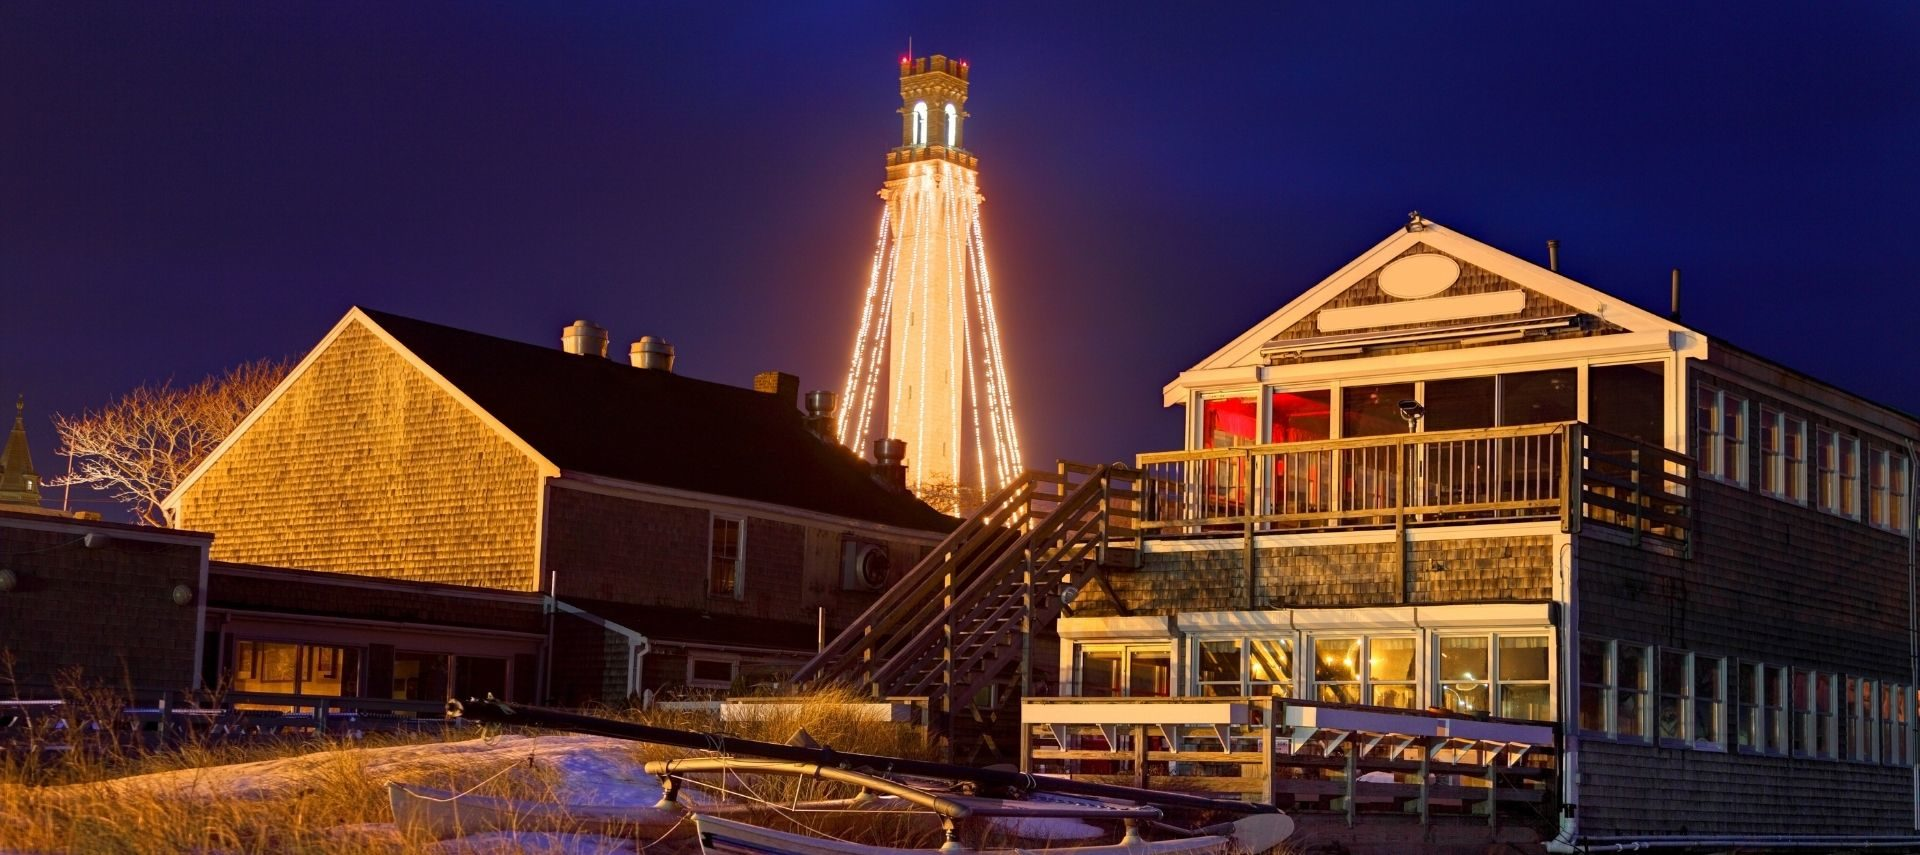 Holiday lights twinkling at night behind a row of beach houses on Cape Cod